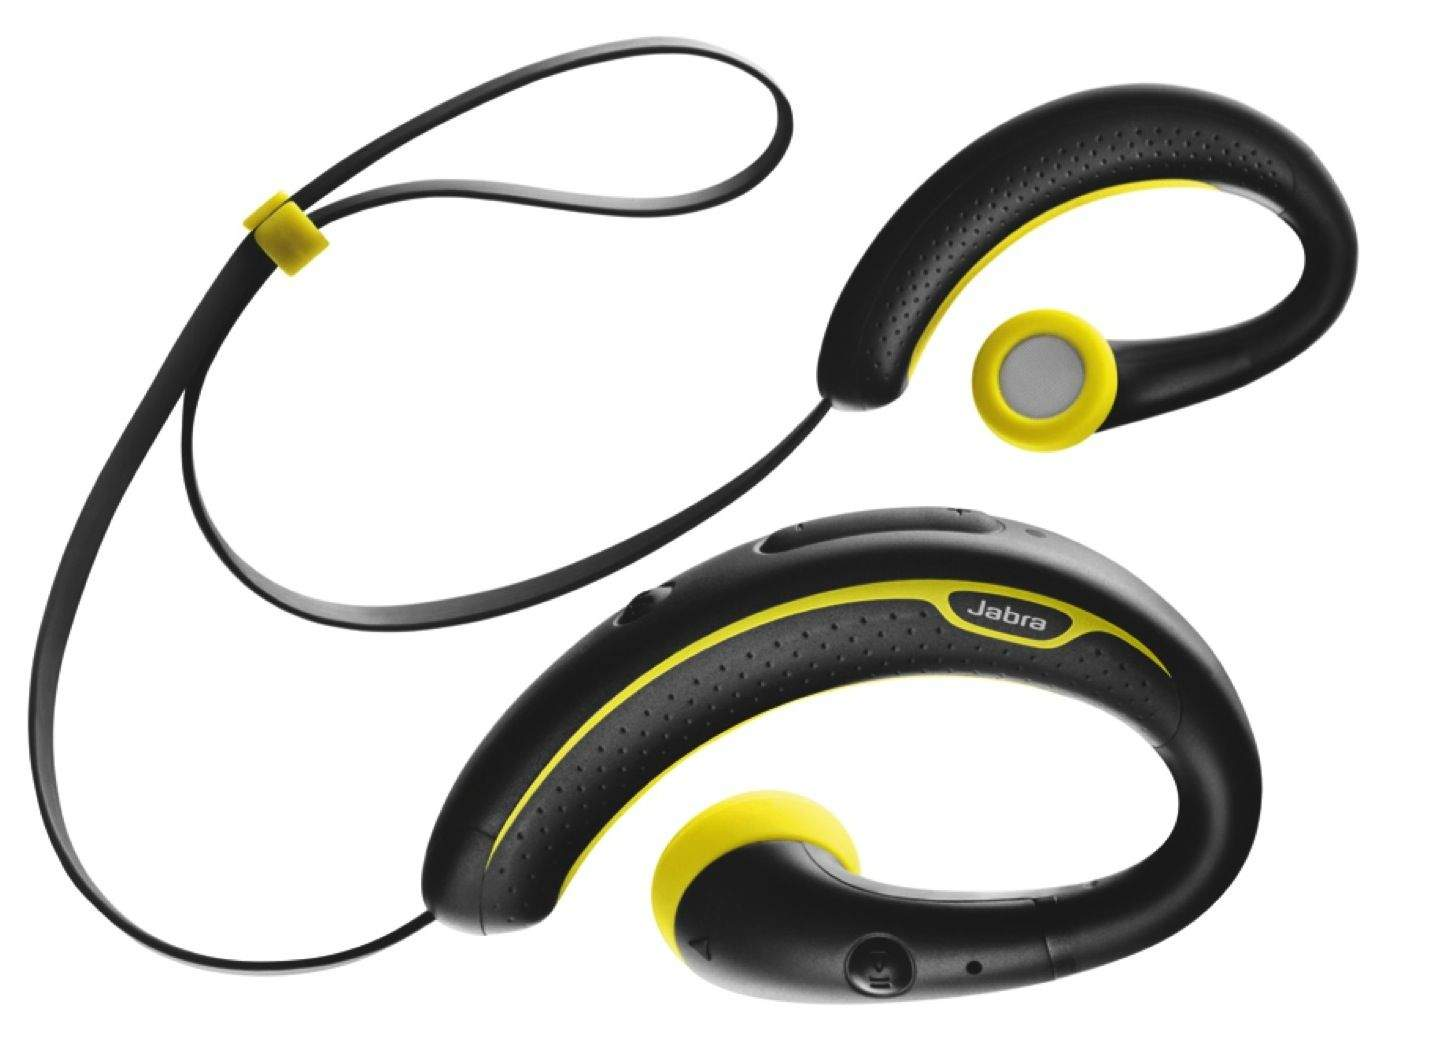 Jabra Sport Bluetooth